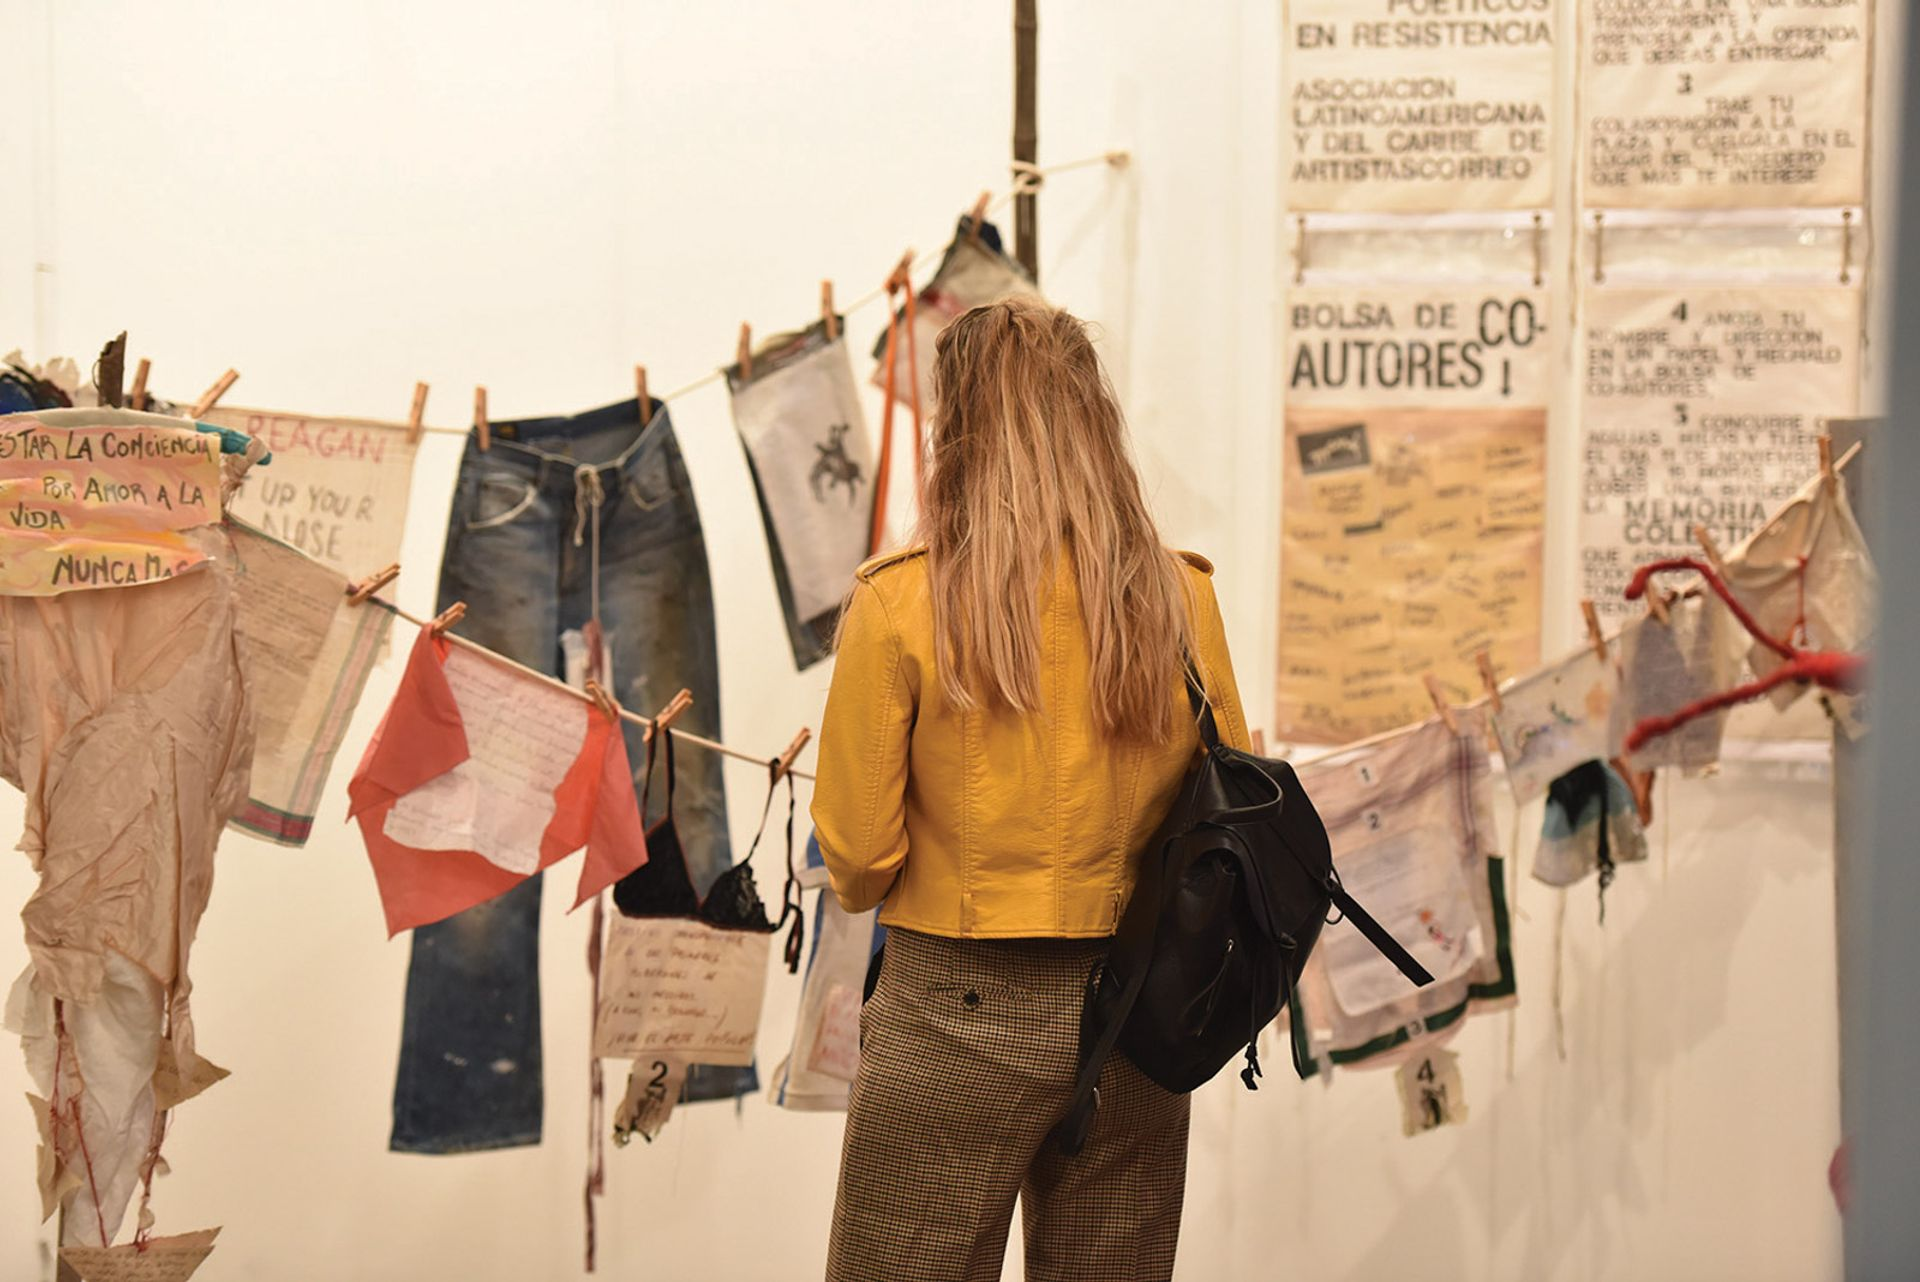 Rags to riches? A visitor at last year's edition of ArteBA; since then, Argentina's economic recovery has been rocky Courtesy of arteBA Fundación